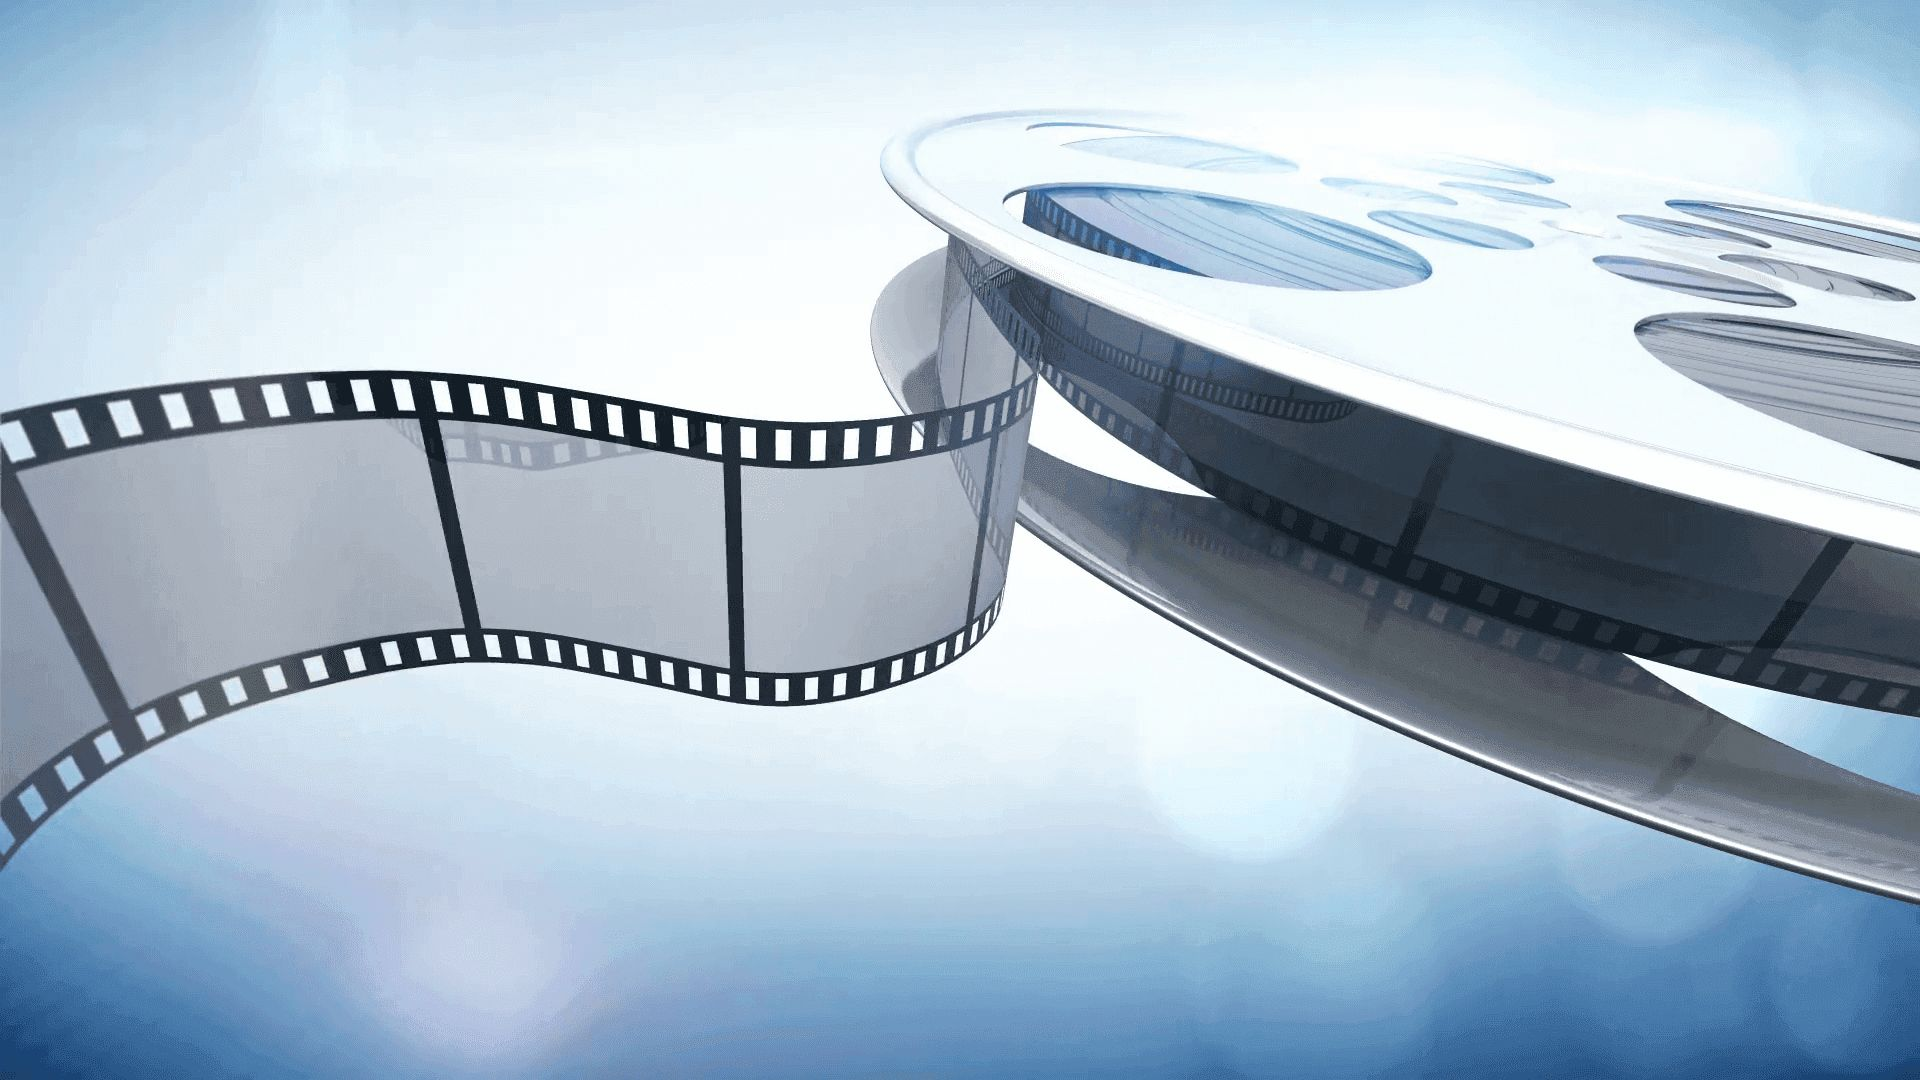 Cinema hd wallpaper 1080